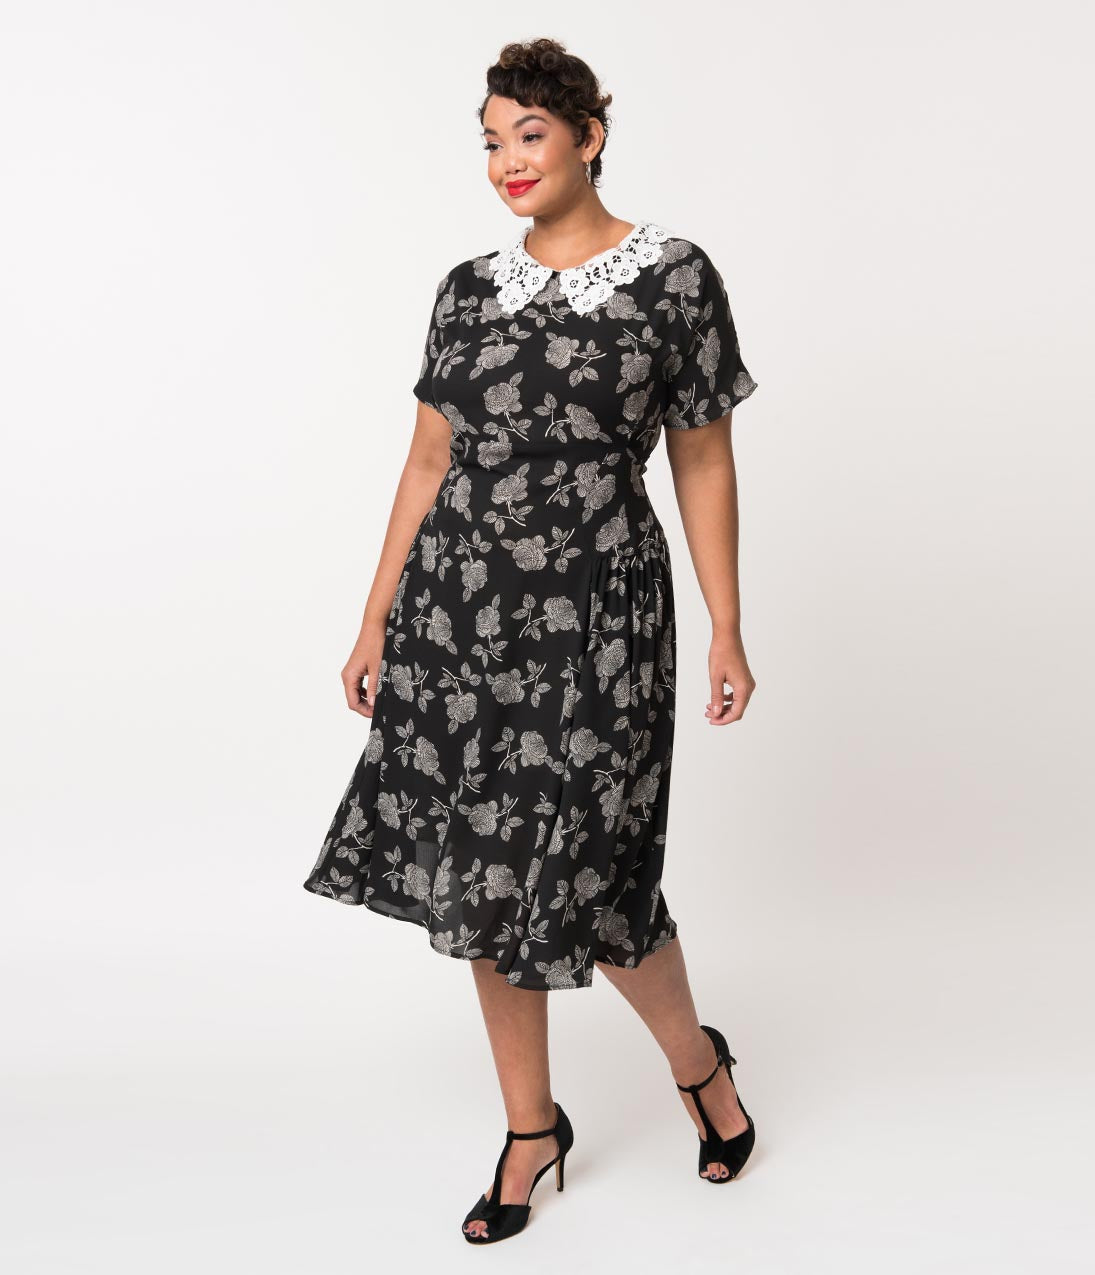 1940s Dresses | 40s Dress, Swing Dress Unique Vintage Plus Size 1940S Black  White Floral Lace Collar Margie Dress $88.00 AT vintagedancer.com